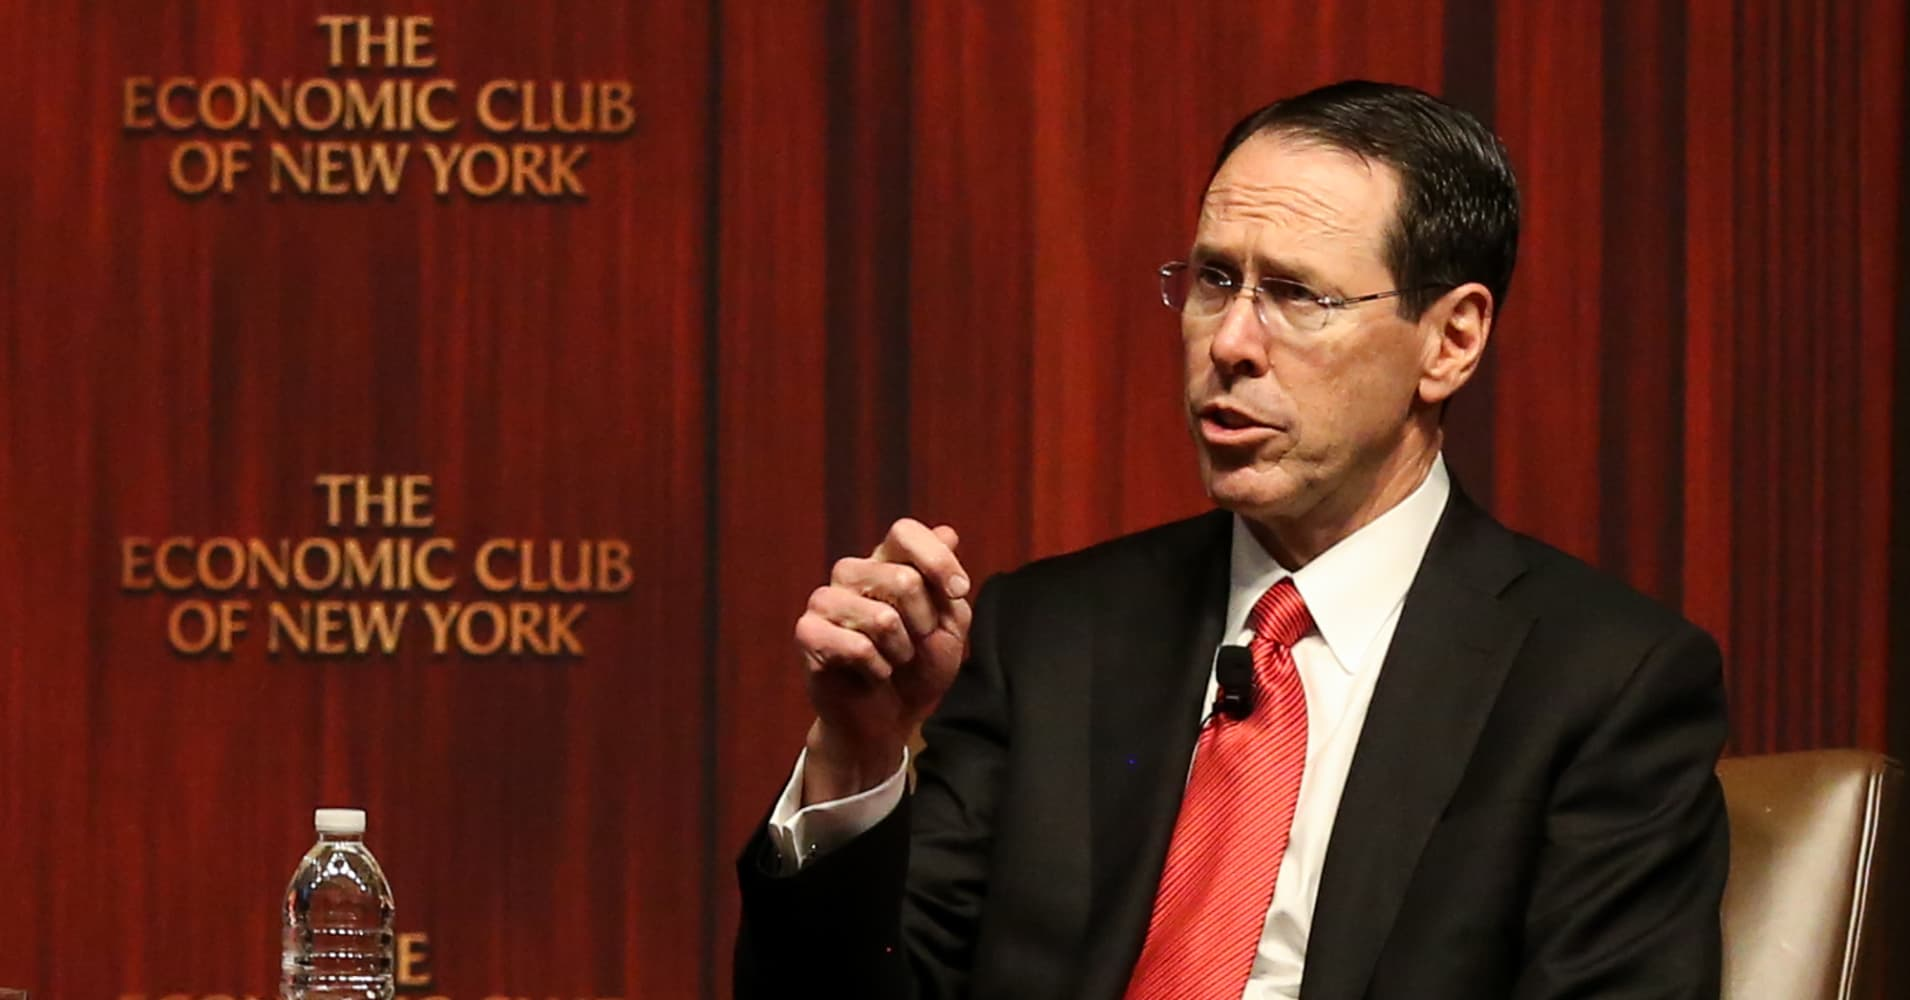 AT&T CEO: I had dinner with a bunch of CEOs and we don't see market correction changing our outlook